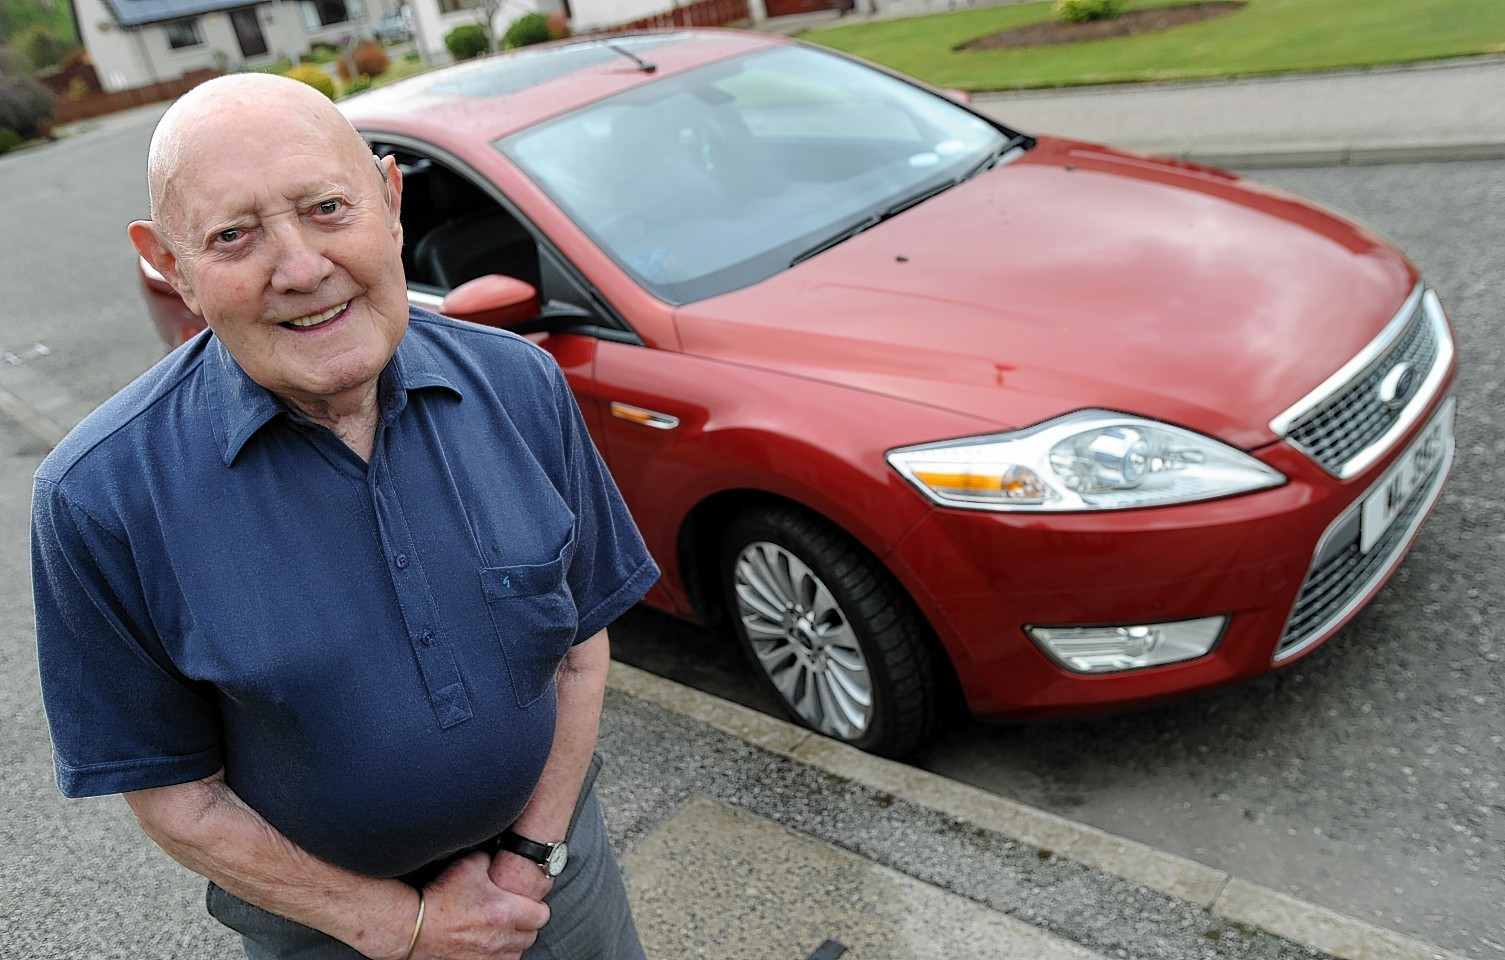 Norman Lawrence, of Kemnay, passed the advanced driving exam when he was 95